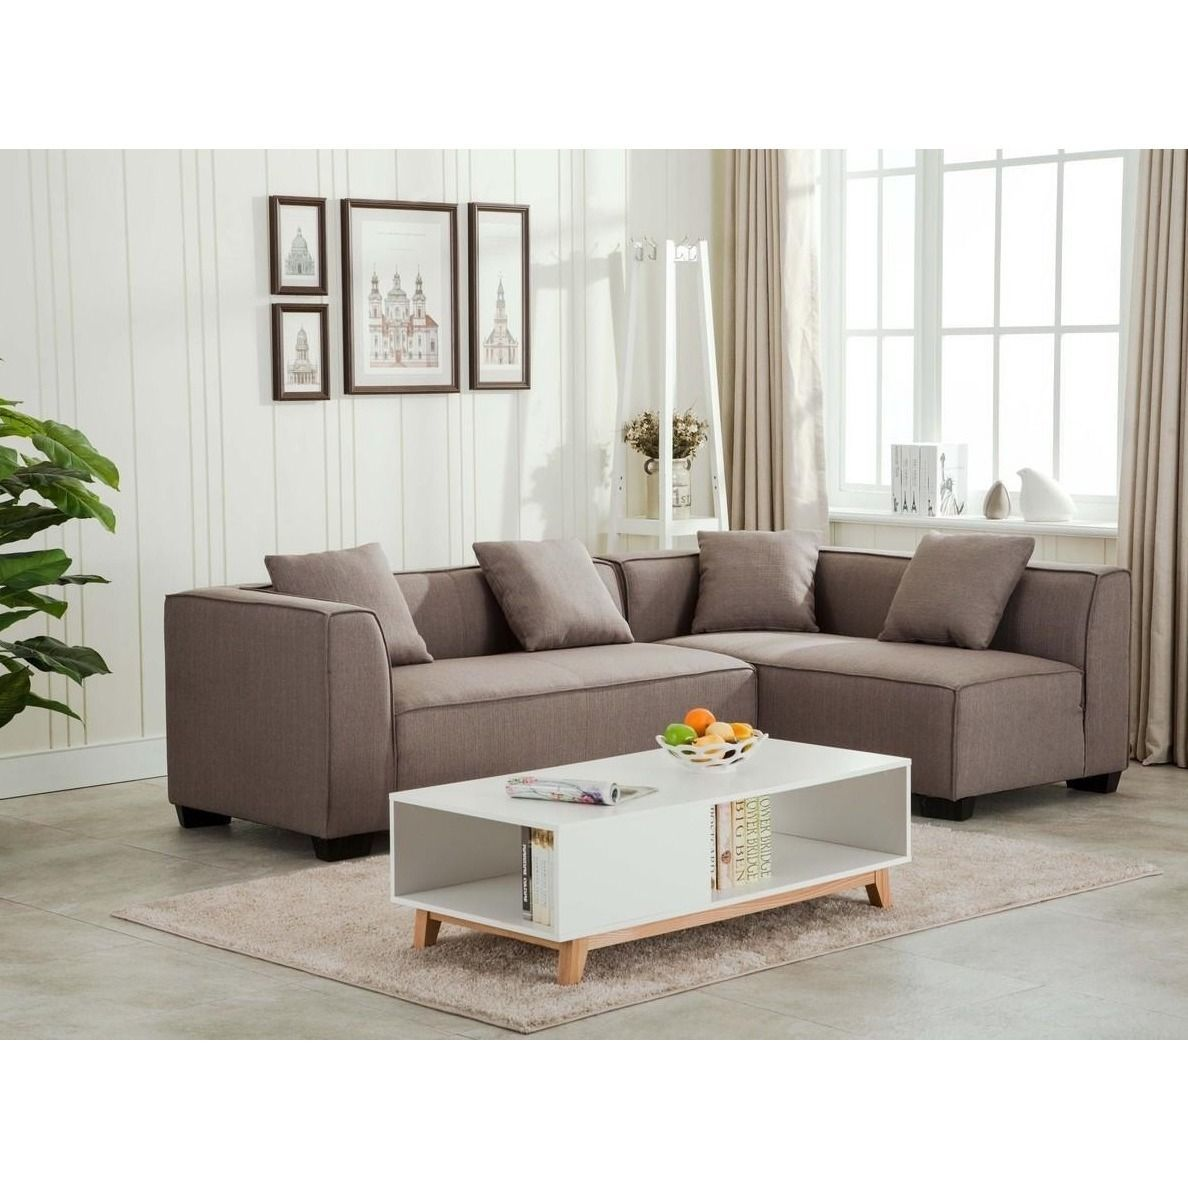 futons small and sofa chair photos rooms couch fold dorm of size ideas for collection cheap out futon mini best set room large